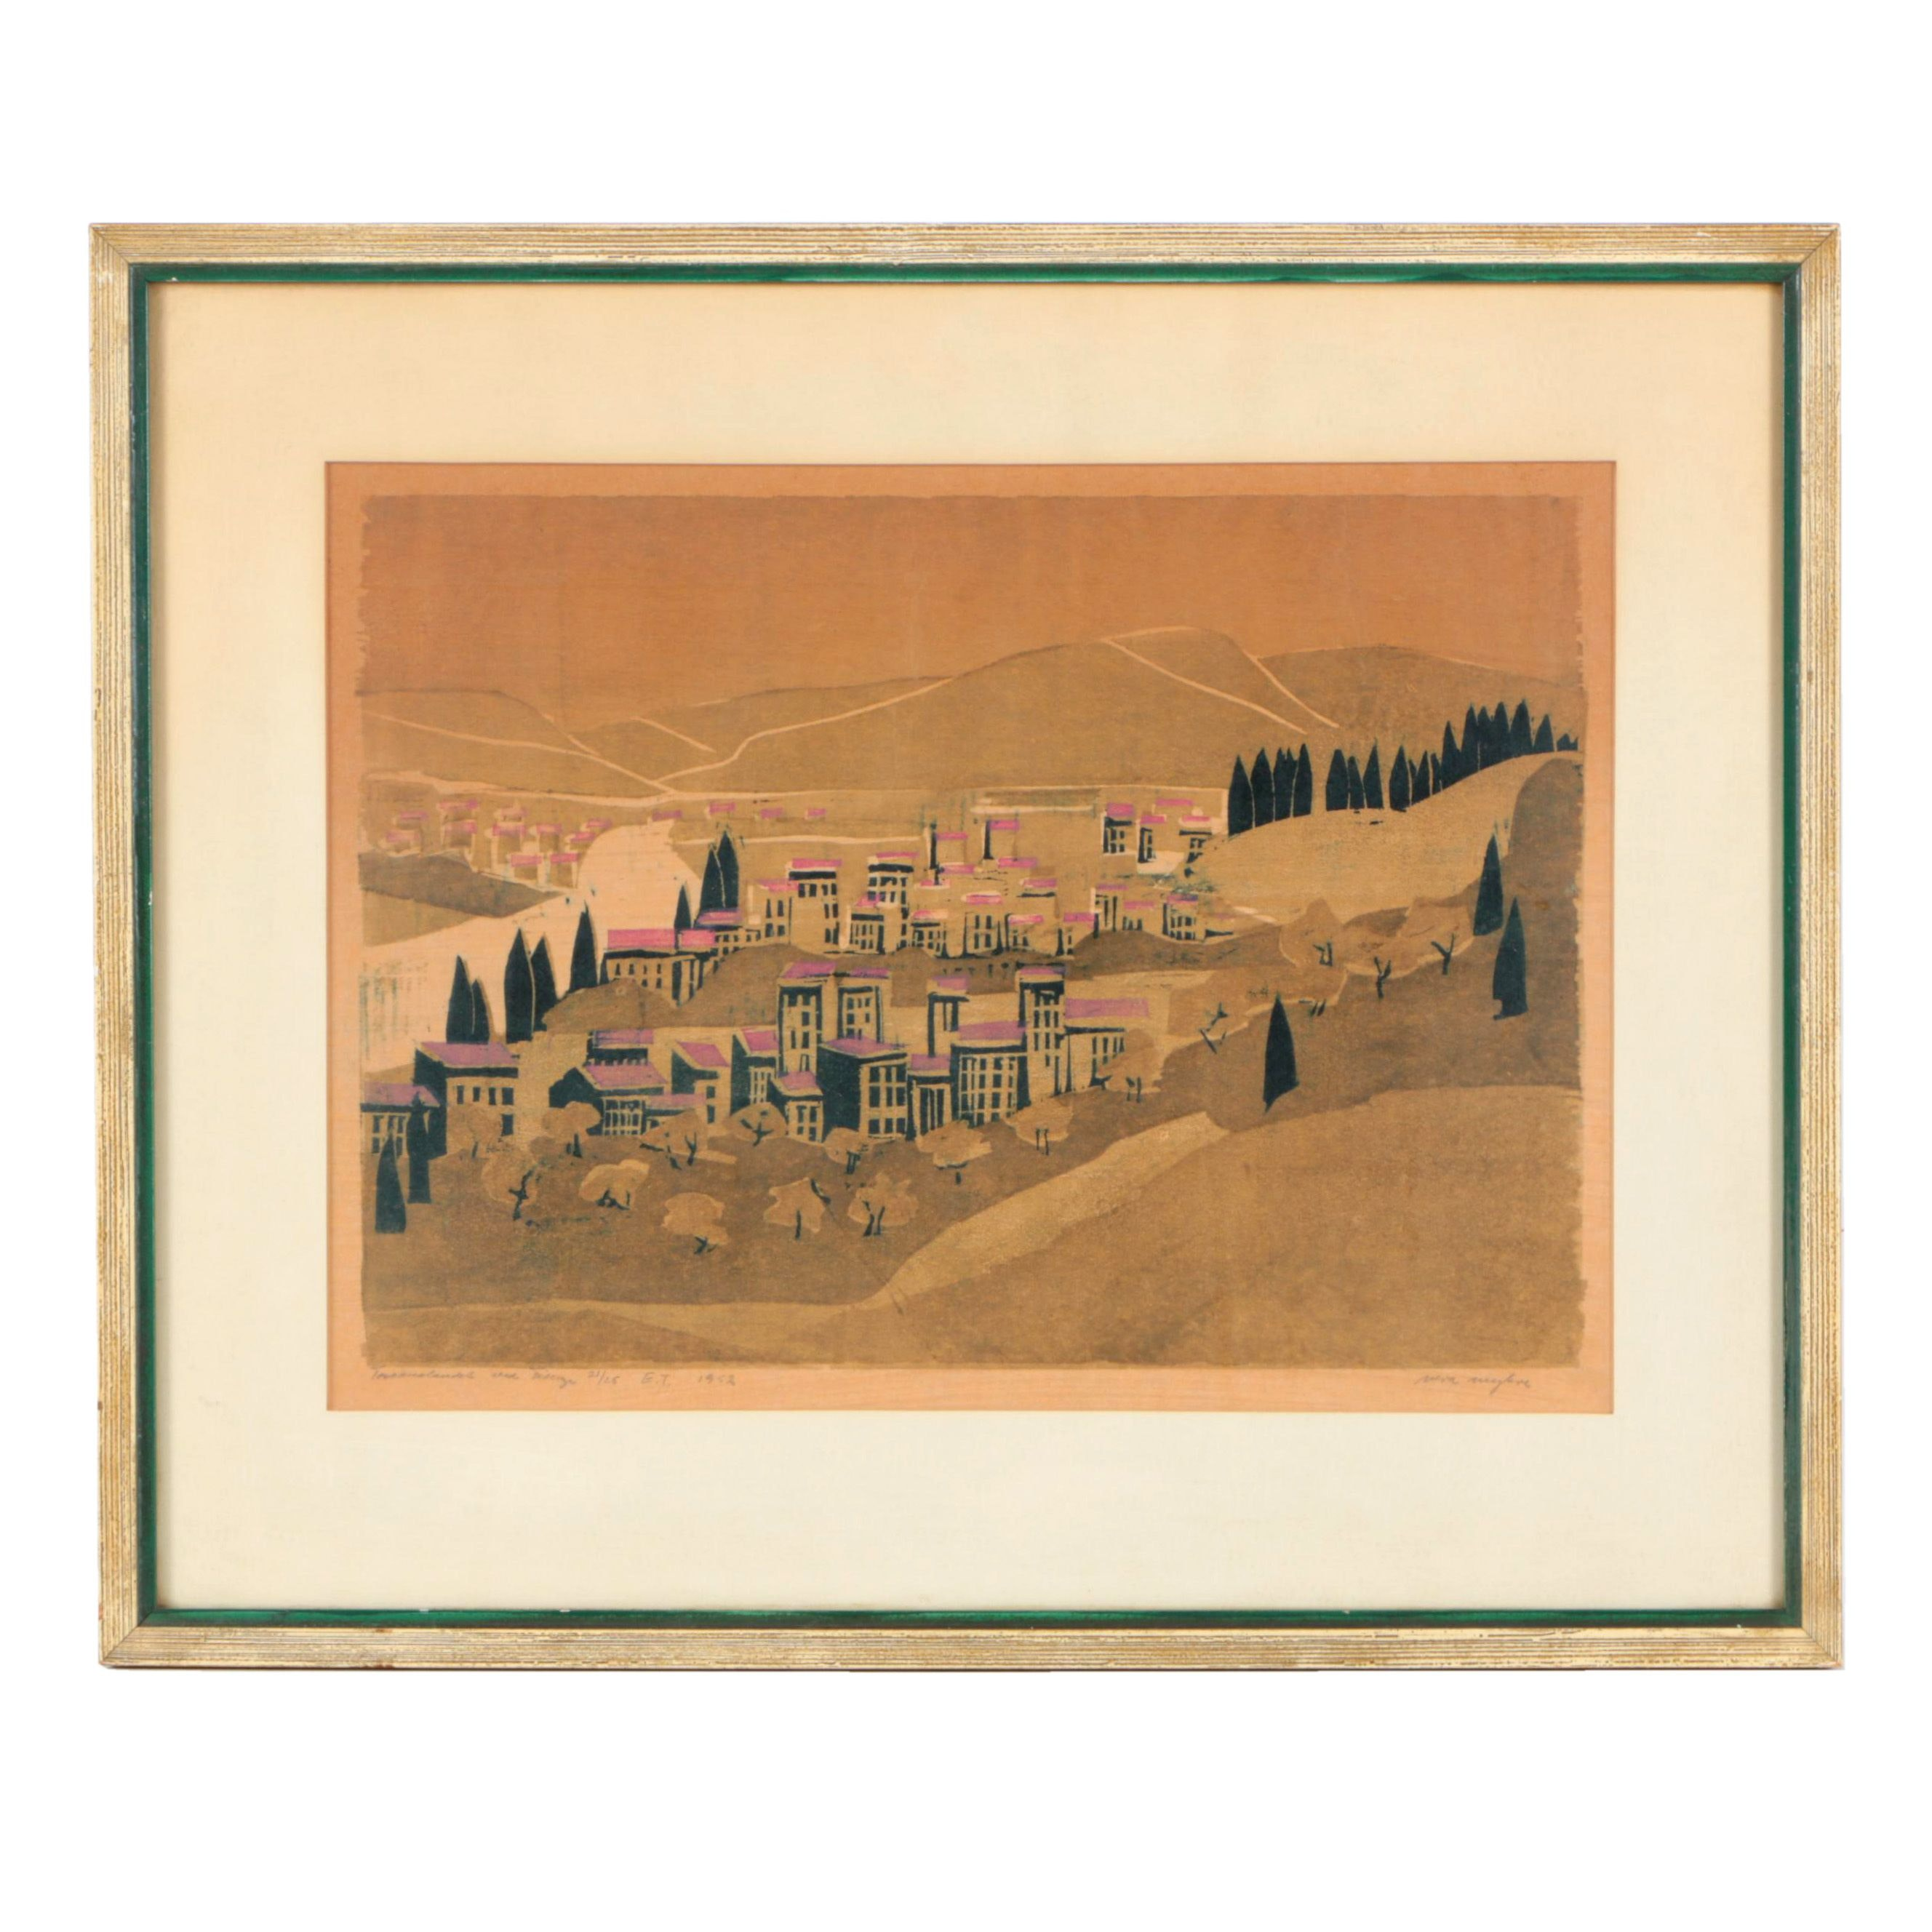 Limited Edition Lithograph on Paper of a Town